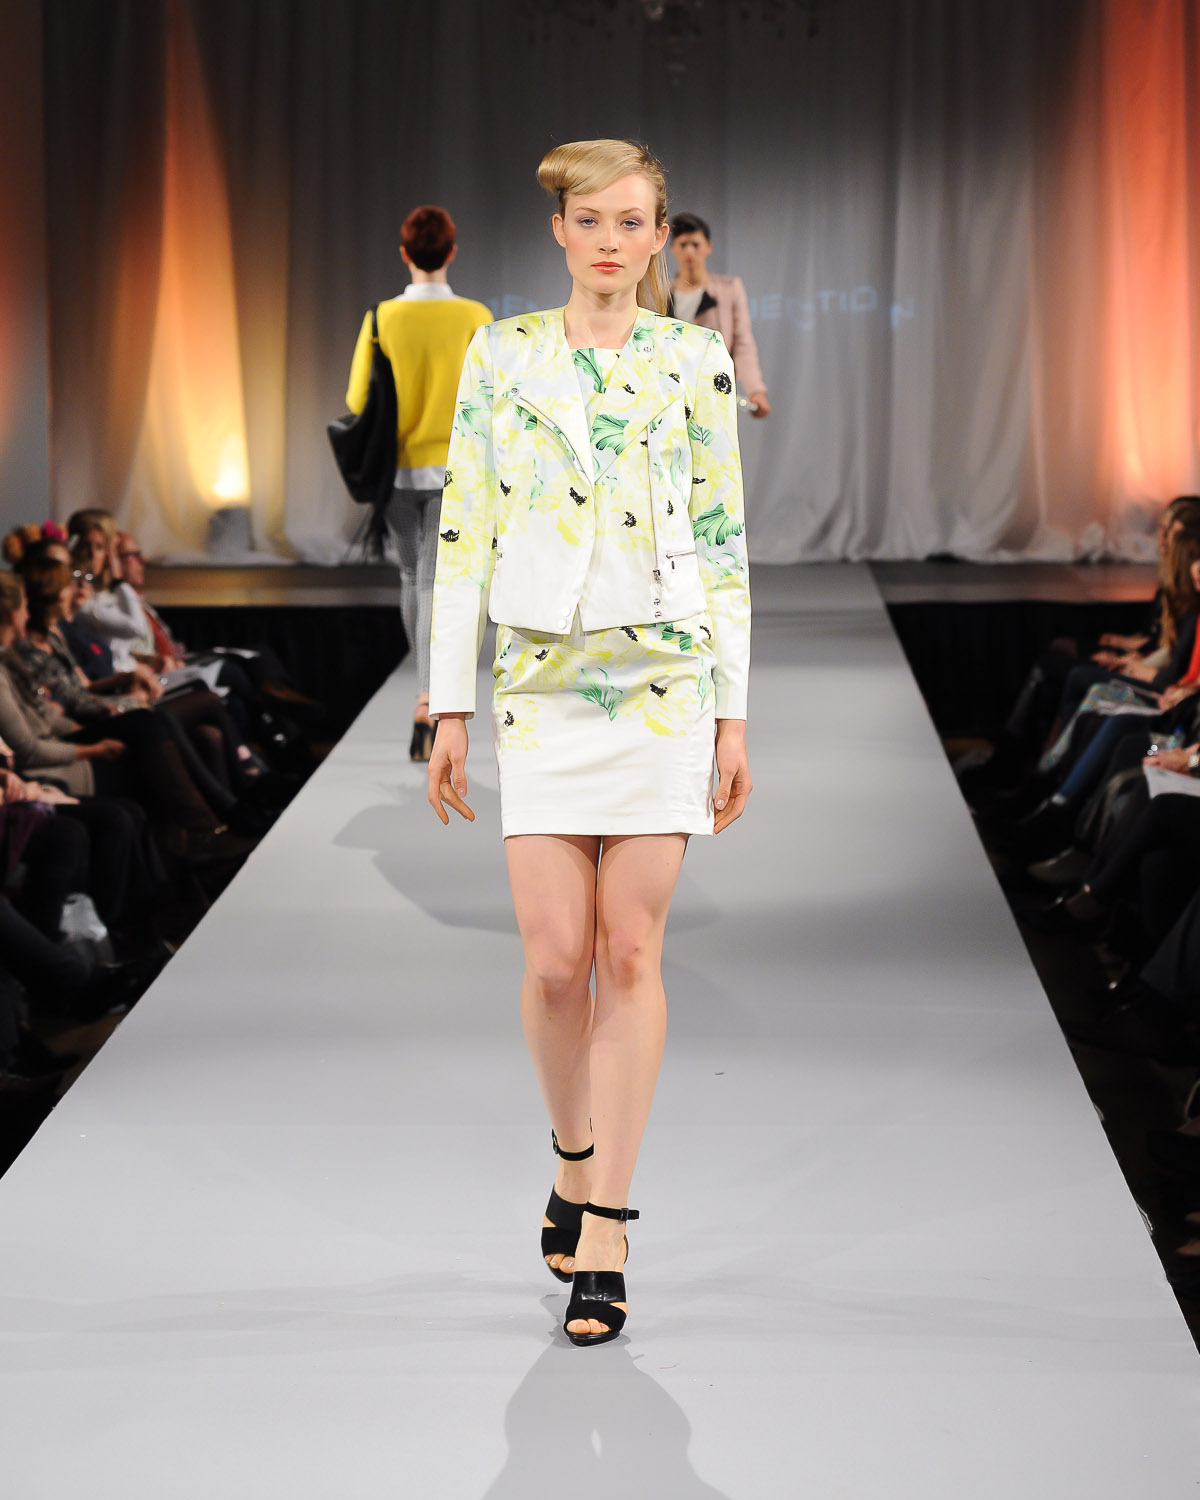 bath-in-fashion-spring-summer-16.jpg